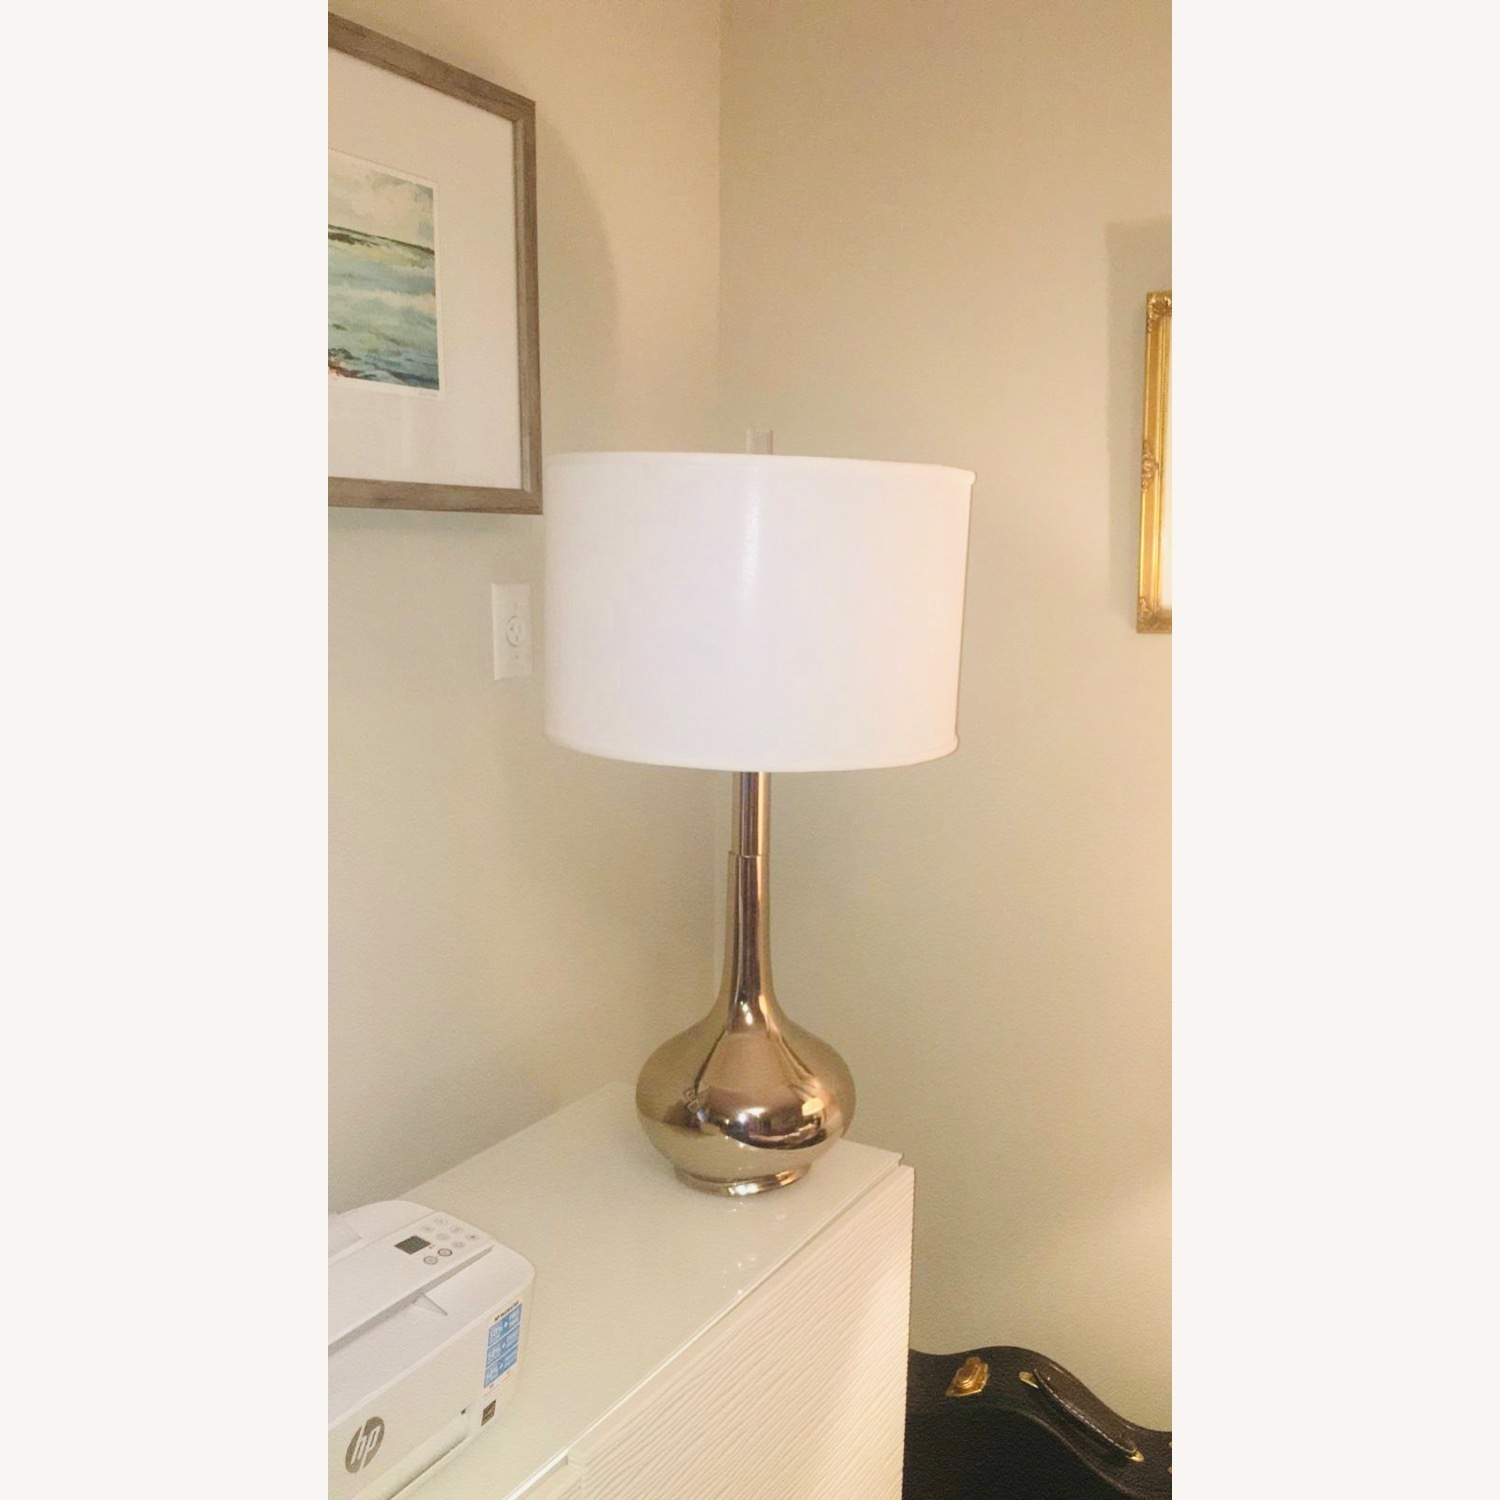 Home Goods Metal Based Lamps & Large Drum Shades (2) - image-2